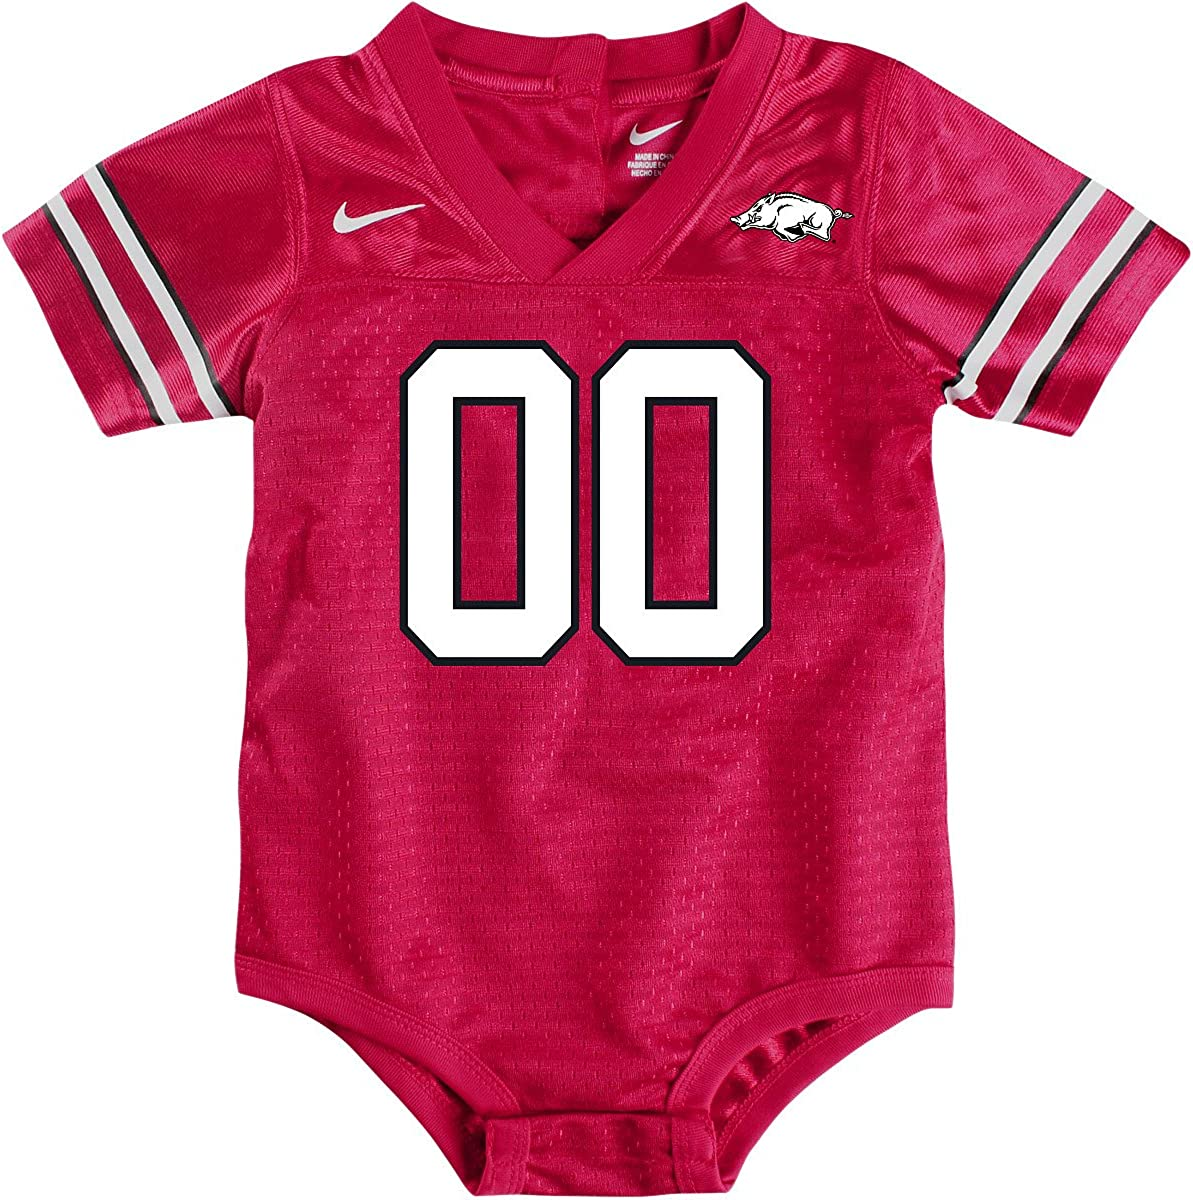 NIKE Arkansas Baby Football Jersey